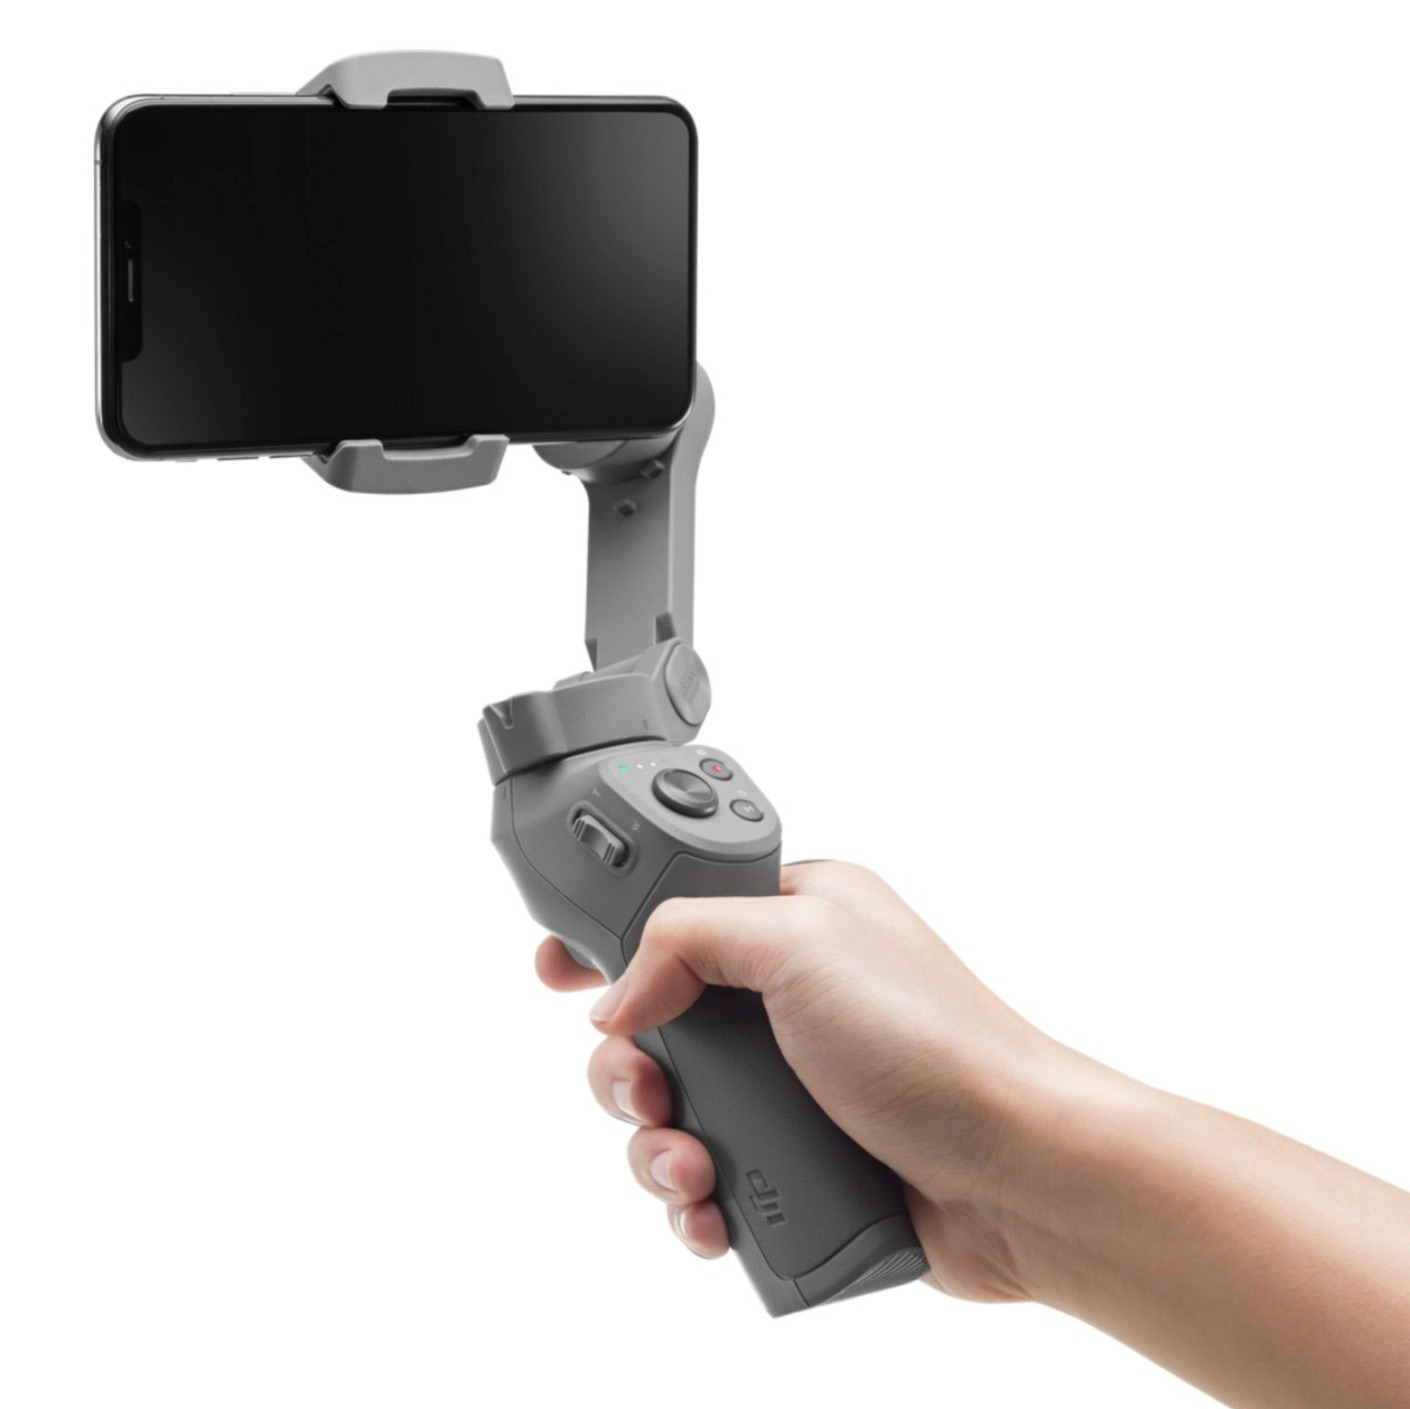 New DJI Osmo Mobile 3 Smartphone Gimbal: smaller, foldable and more intelligent